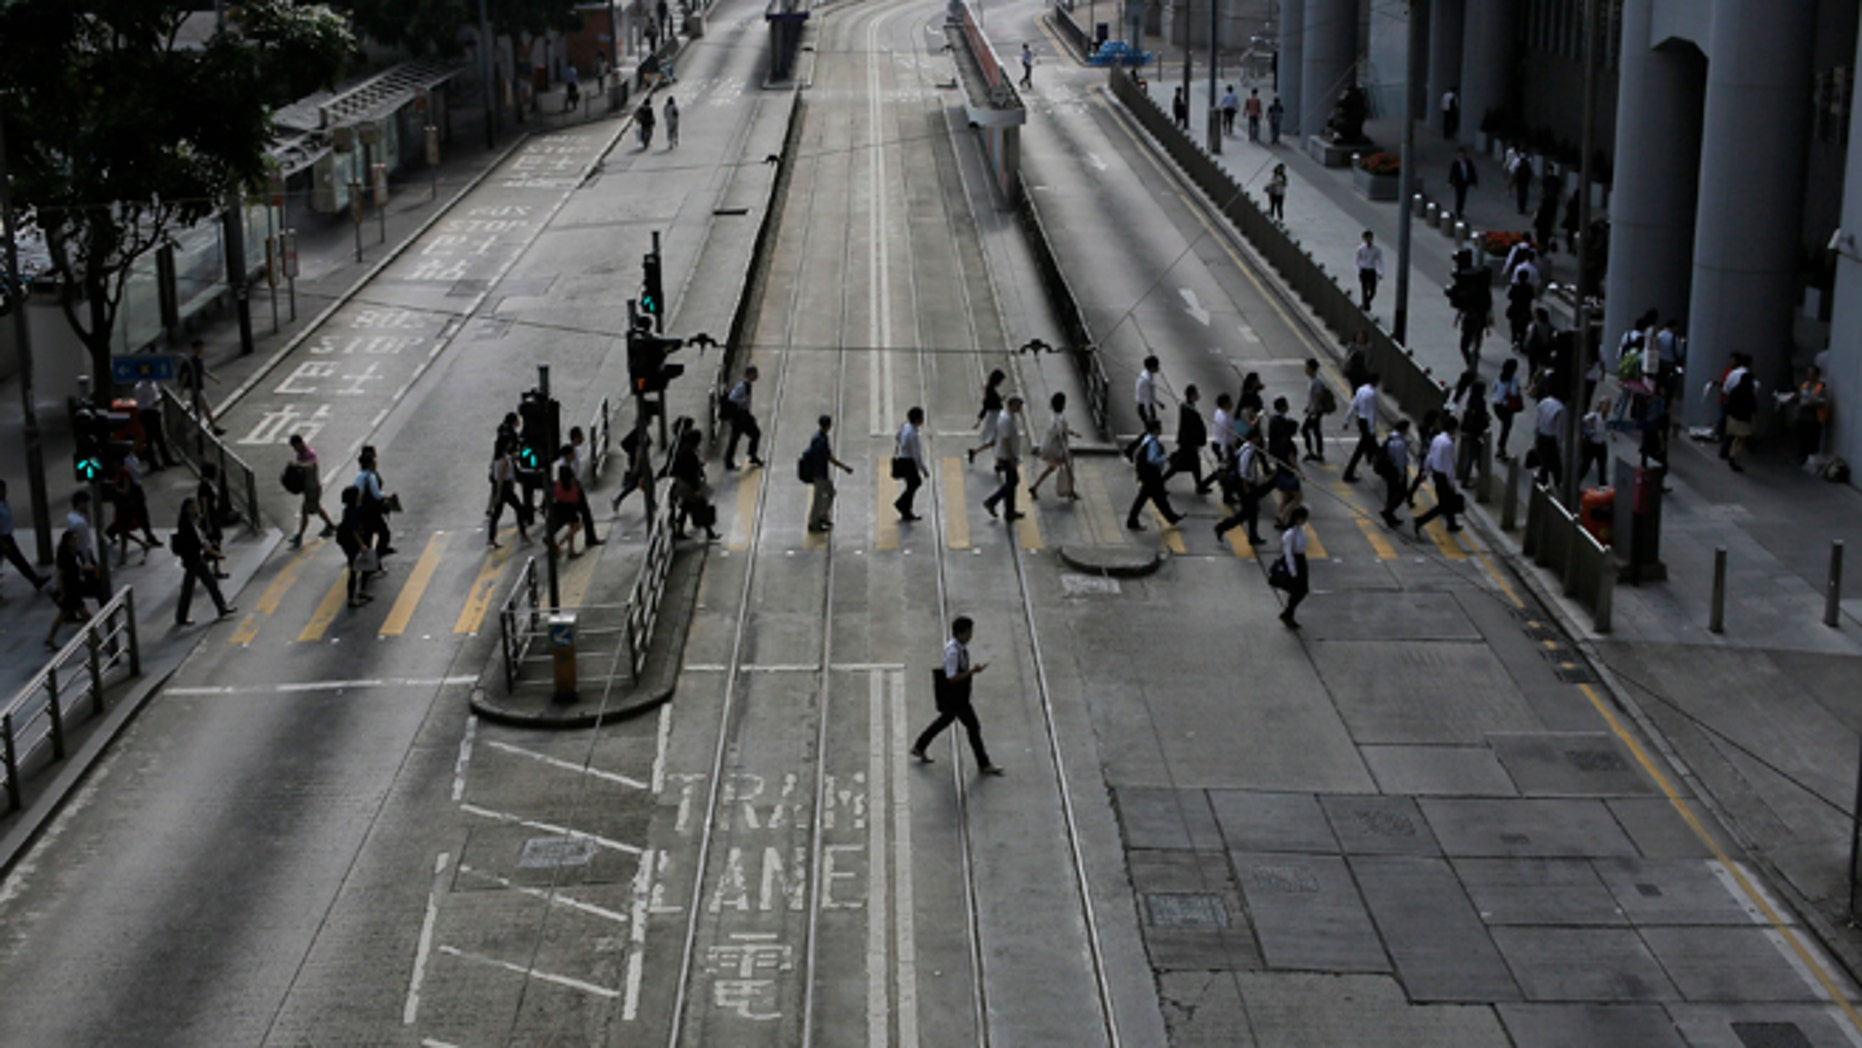 Oct. 9: People walk to work in the occupied areas at Central district in Hong Kong.